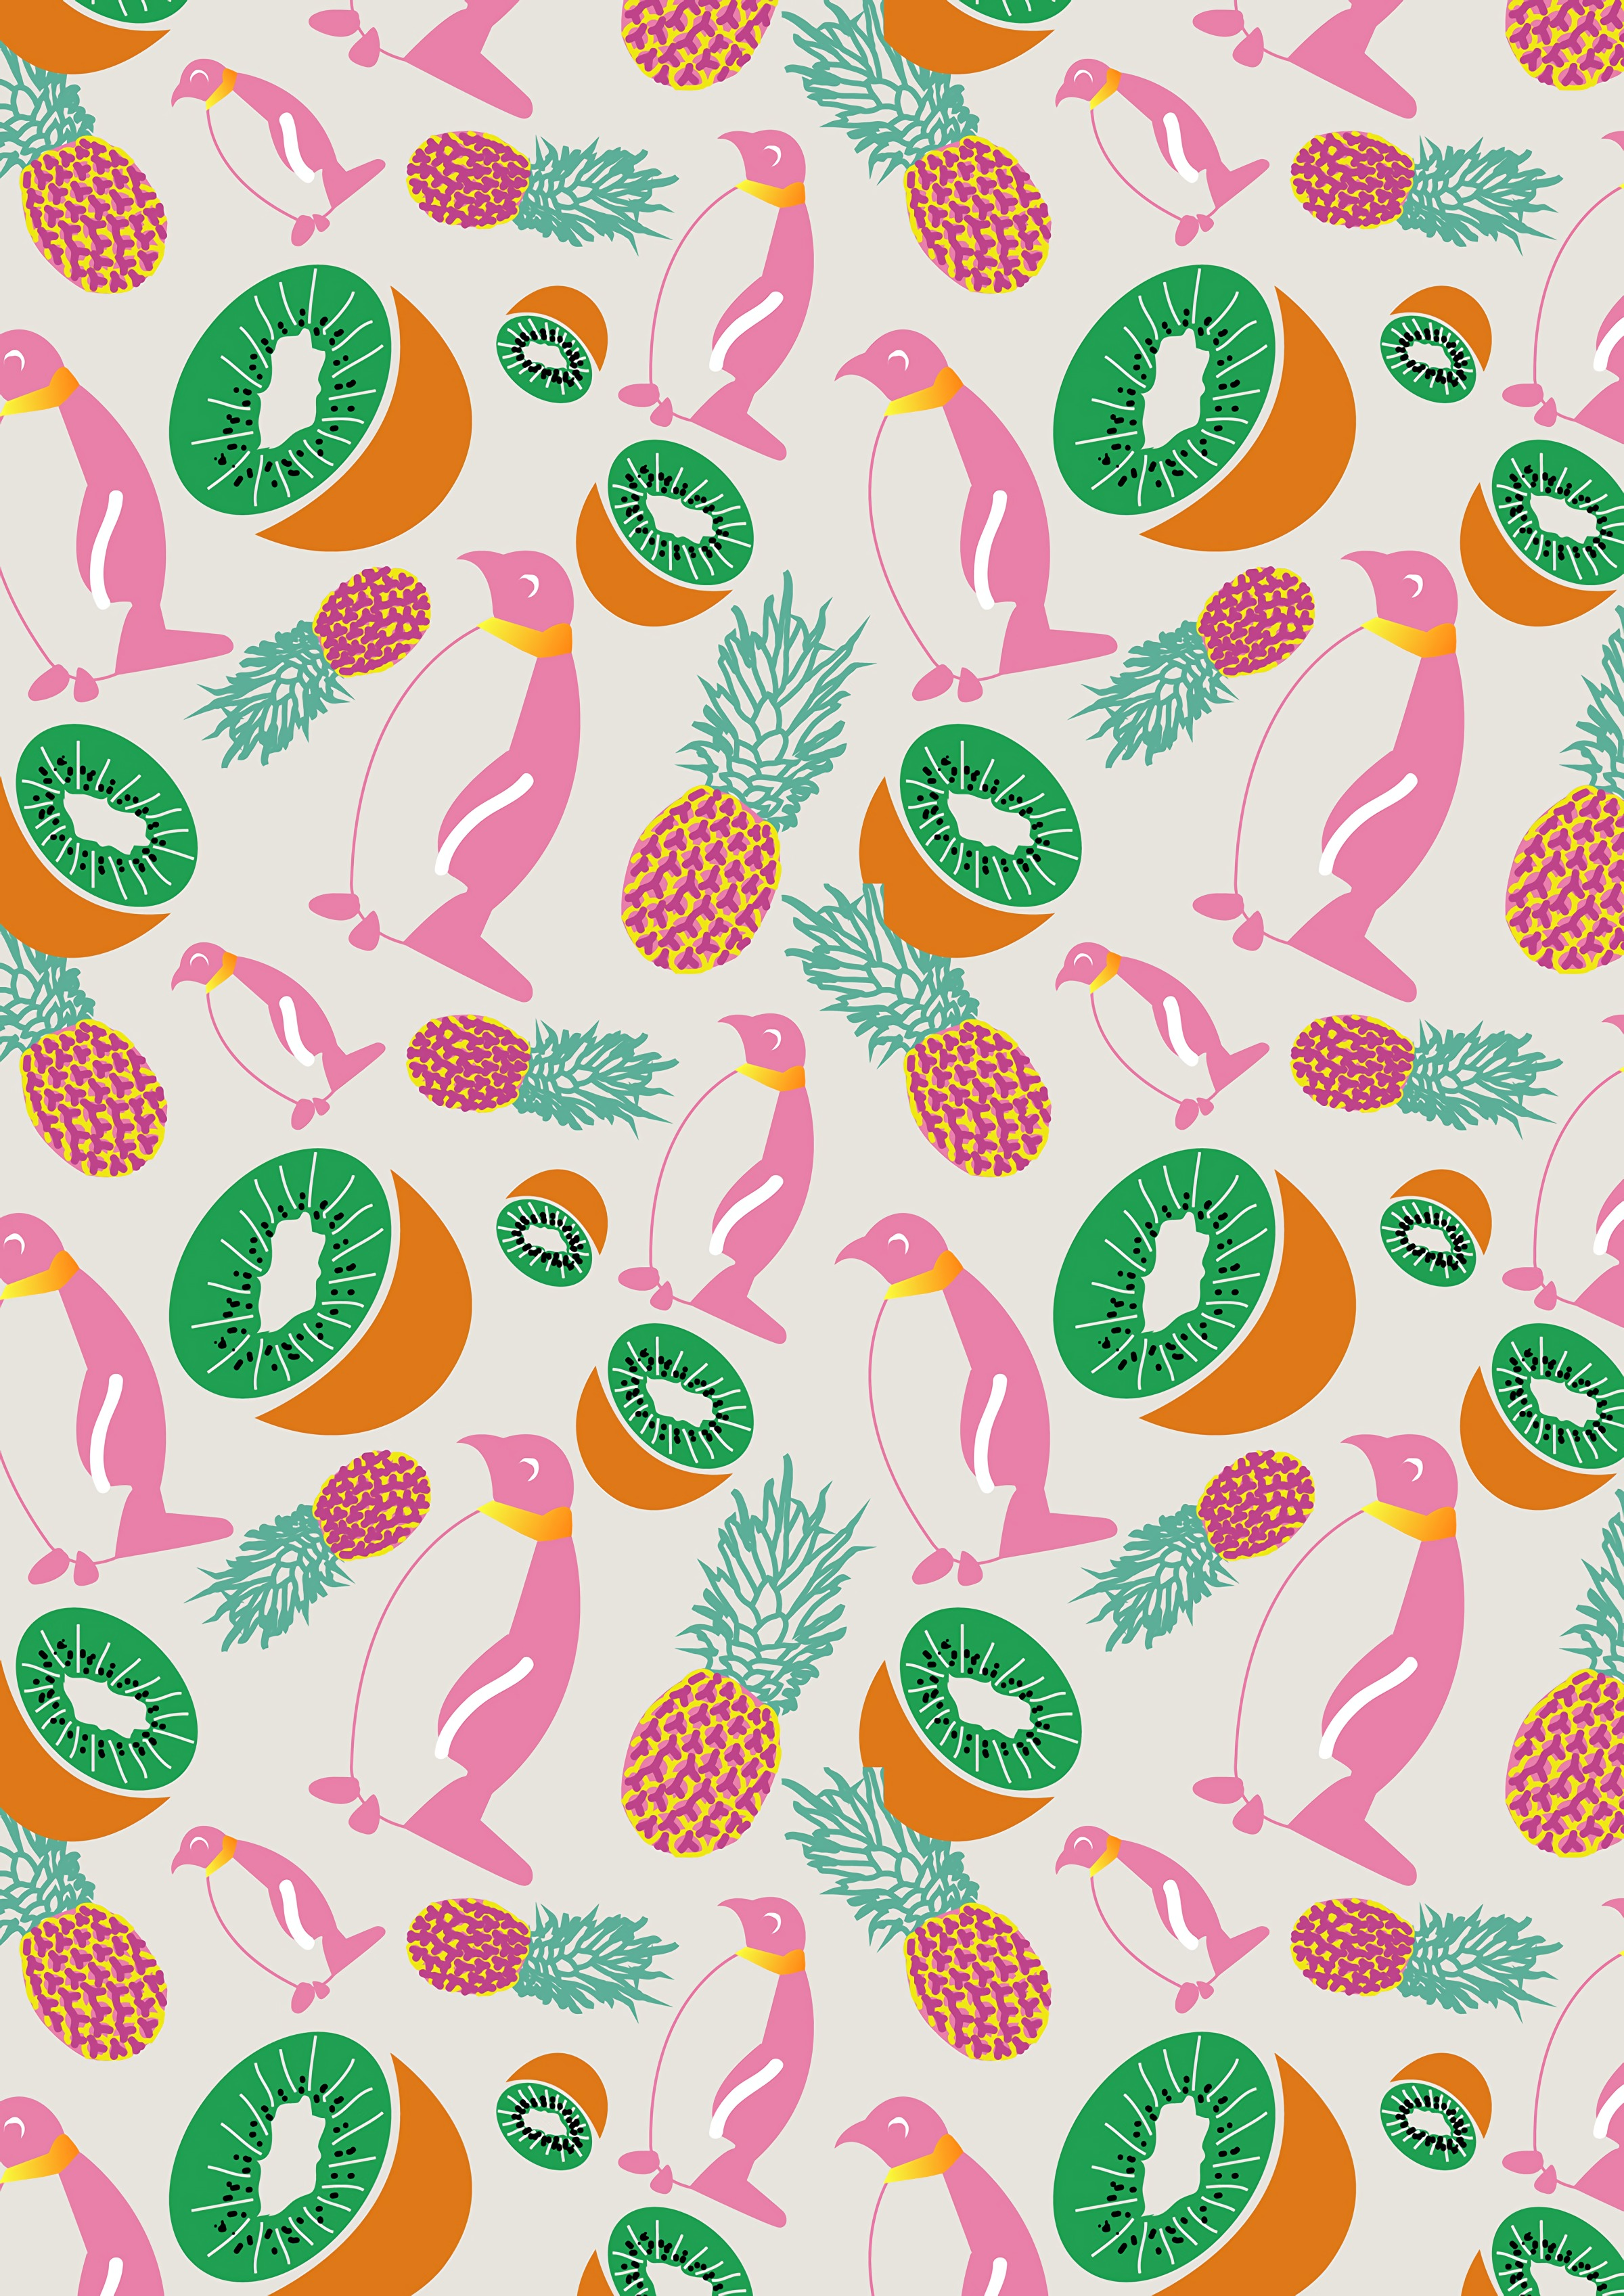 51755 download wallpaper Pinguins, Art, Kiwi, Pineapples, Pattern, Texture, Textures screensavers and pictures for free